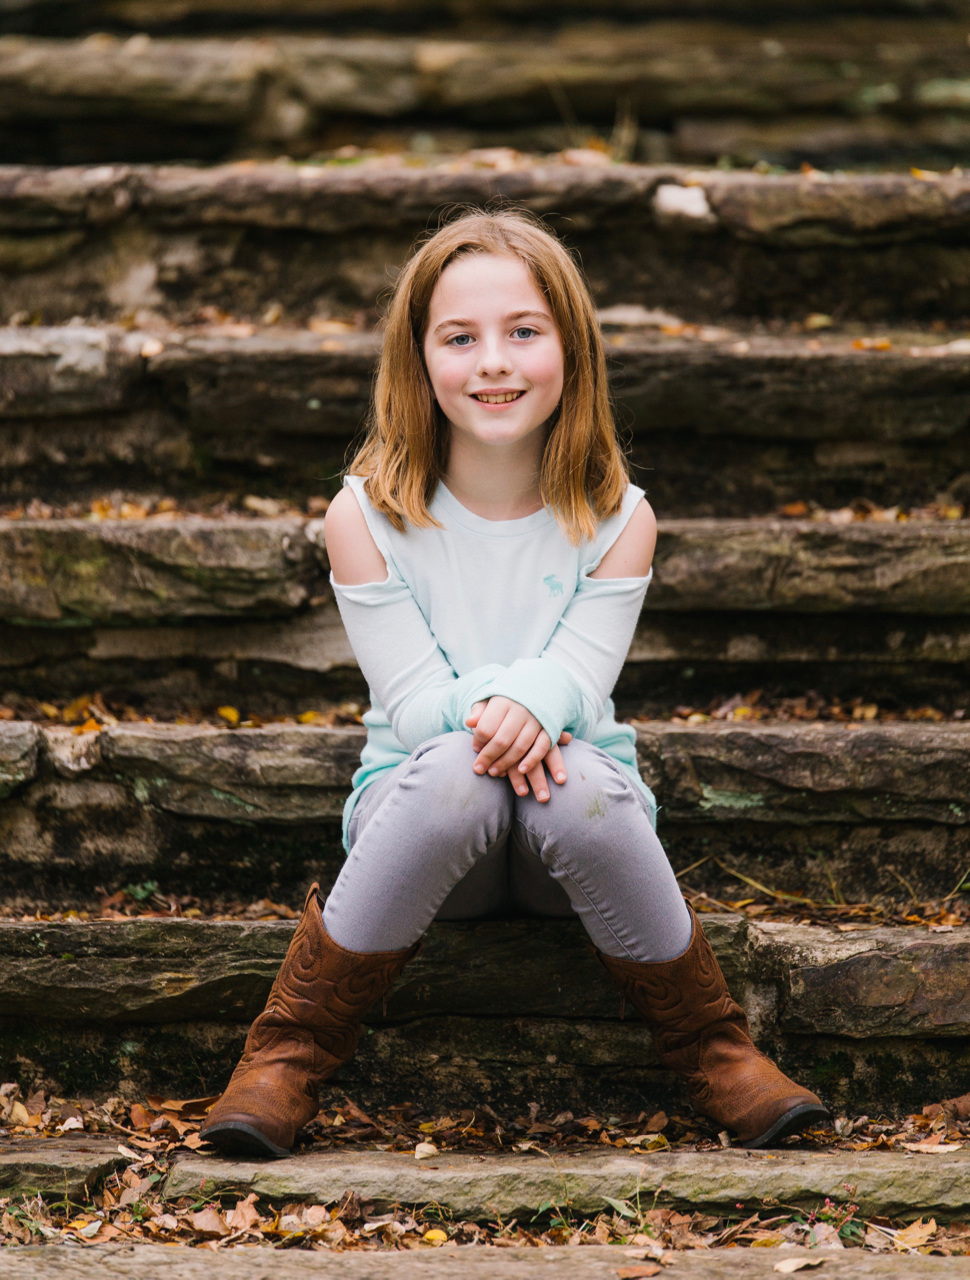 valley-forge-family-photos-emily-brunner-photography (5).jpg